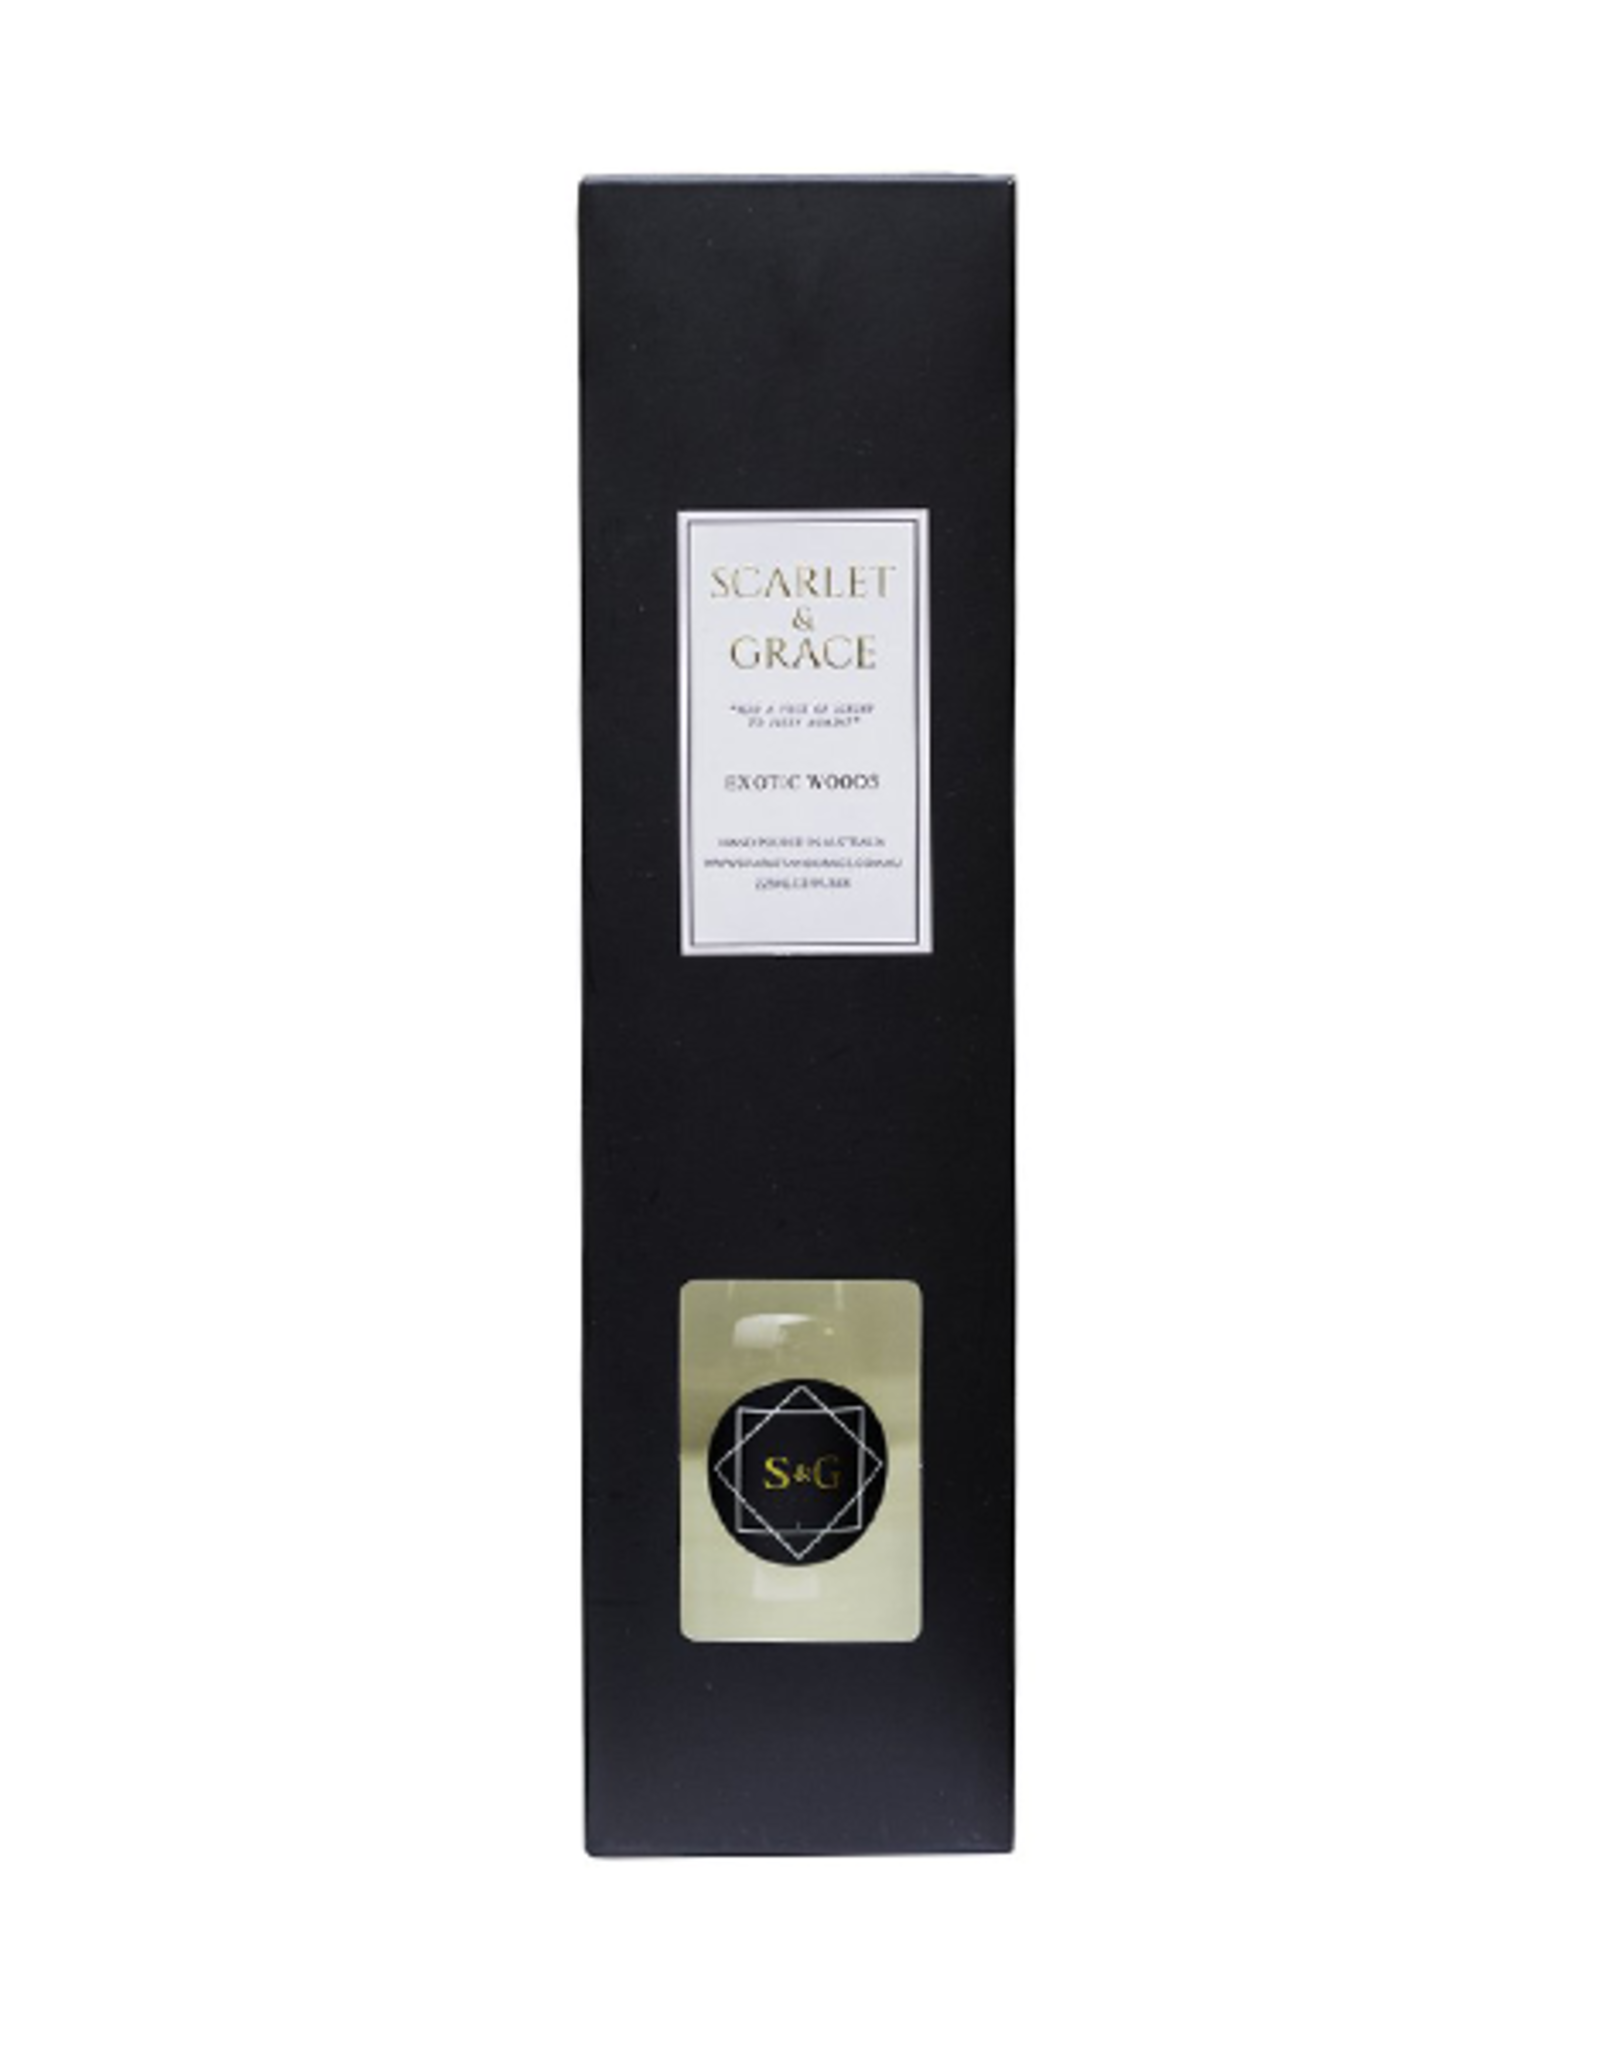 Scarlet & Grace 225ml Diffuser - Exotic Woods